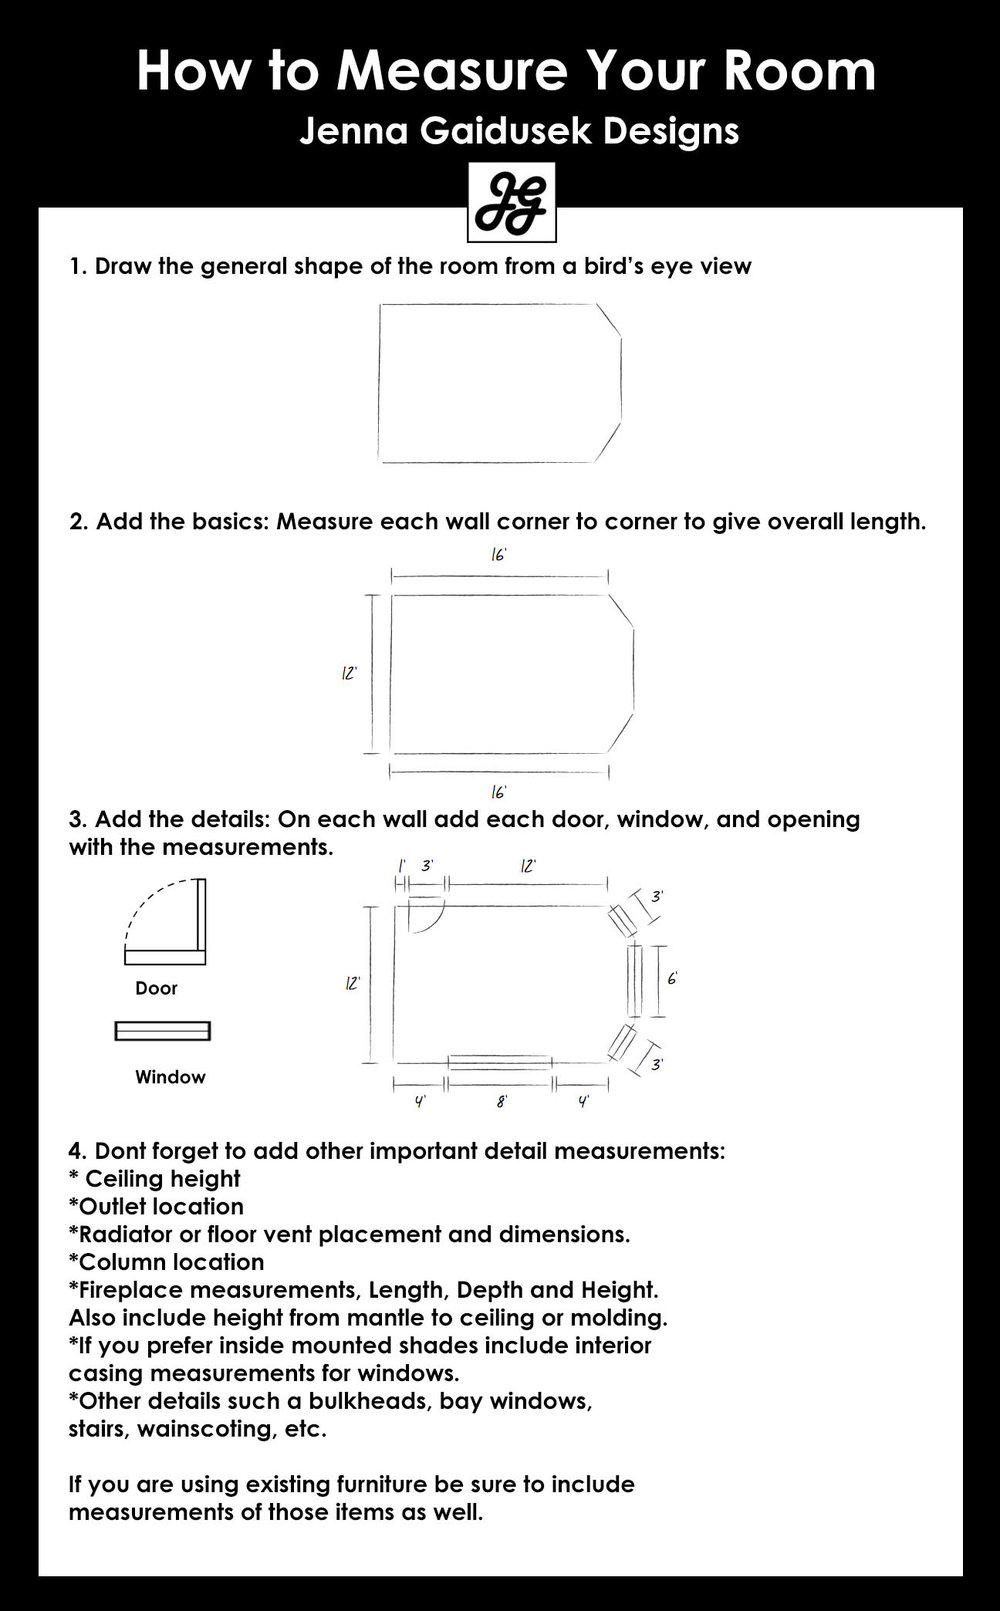 How to Measure Your Room.jpg